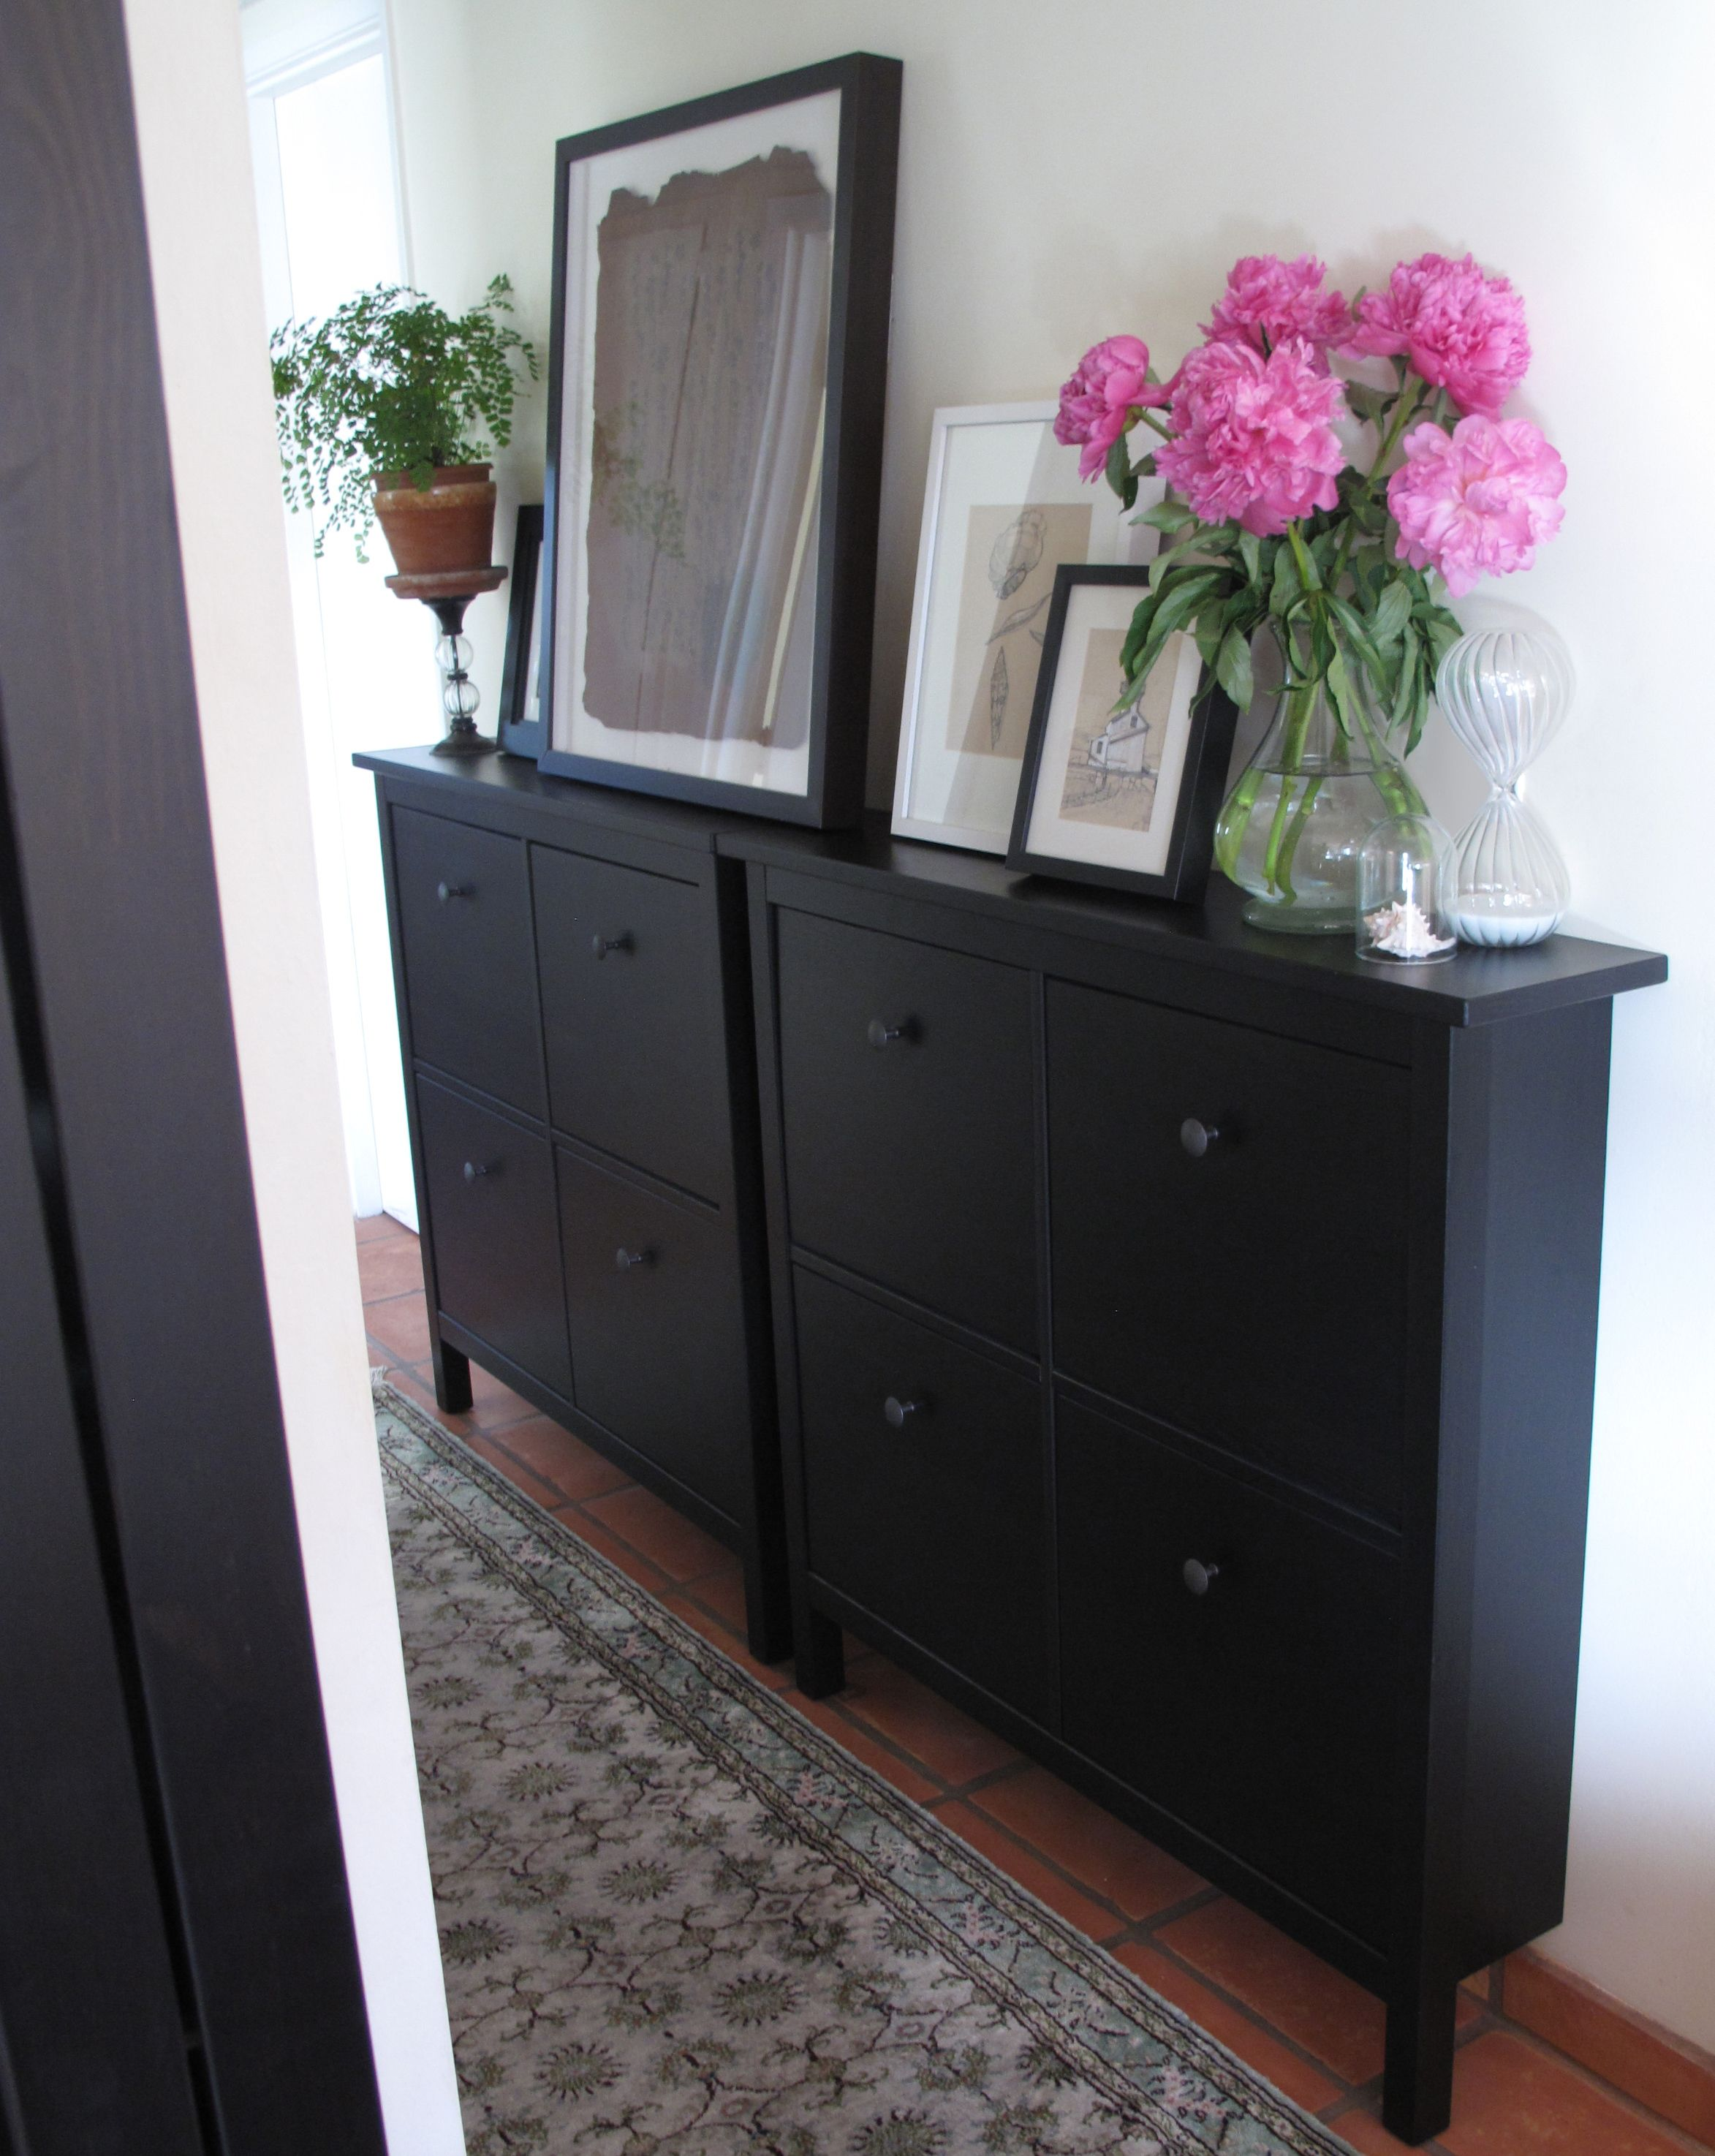 Narrow hallway furniture  STYLING A SMALL SPACE OR OFFICE BY REPURPOSING AN IKEA MUD ROOM